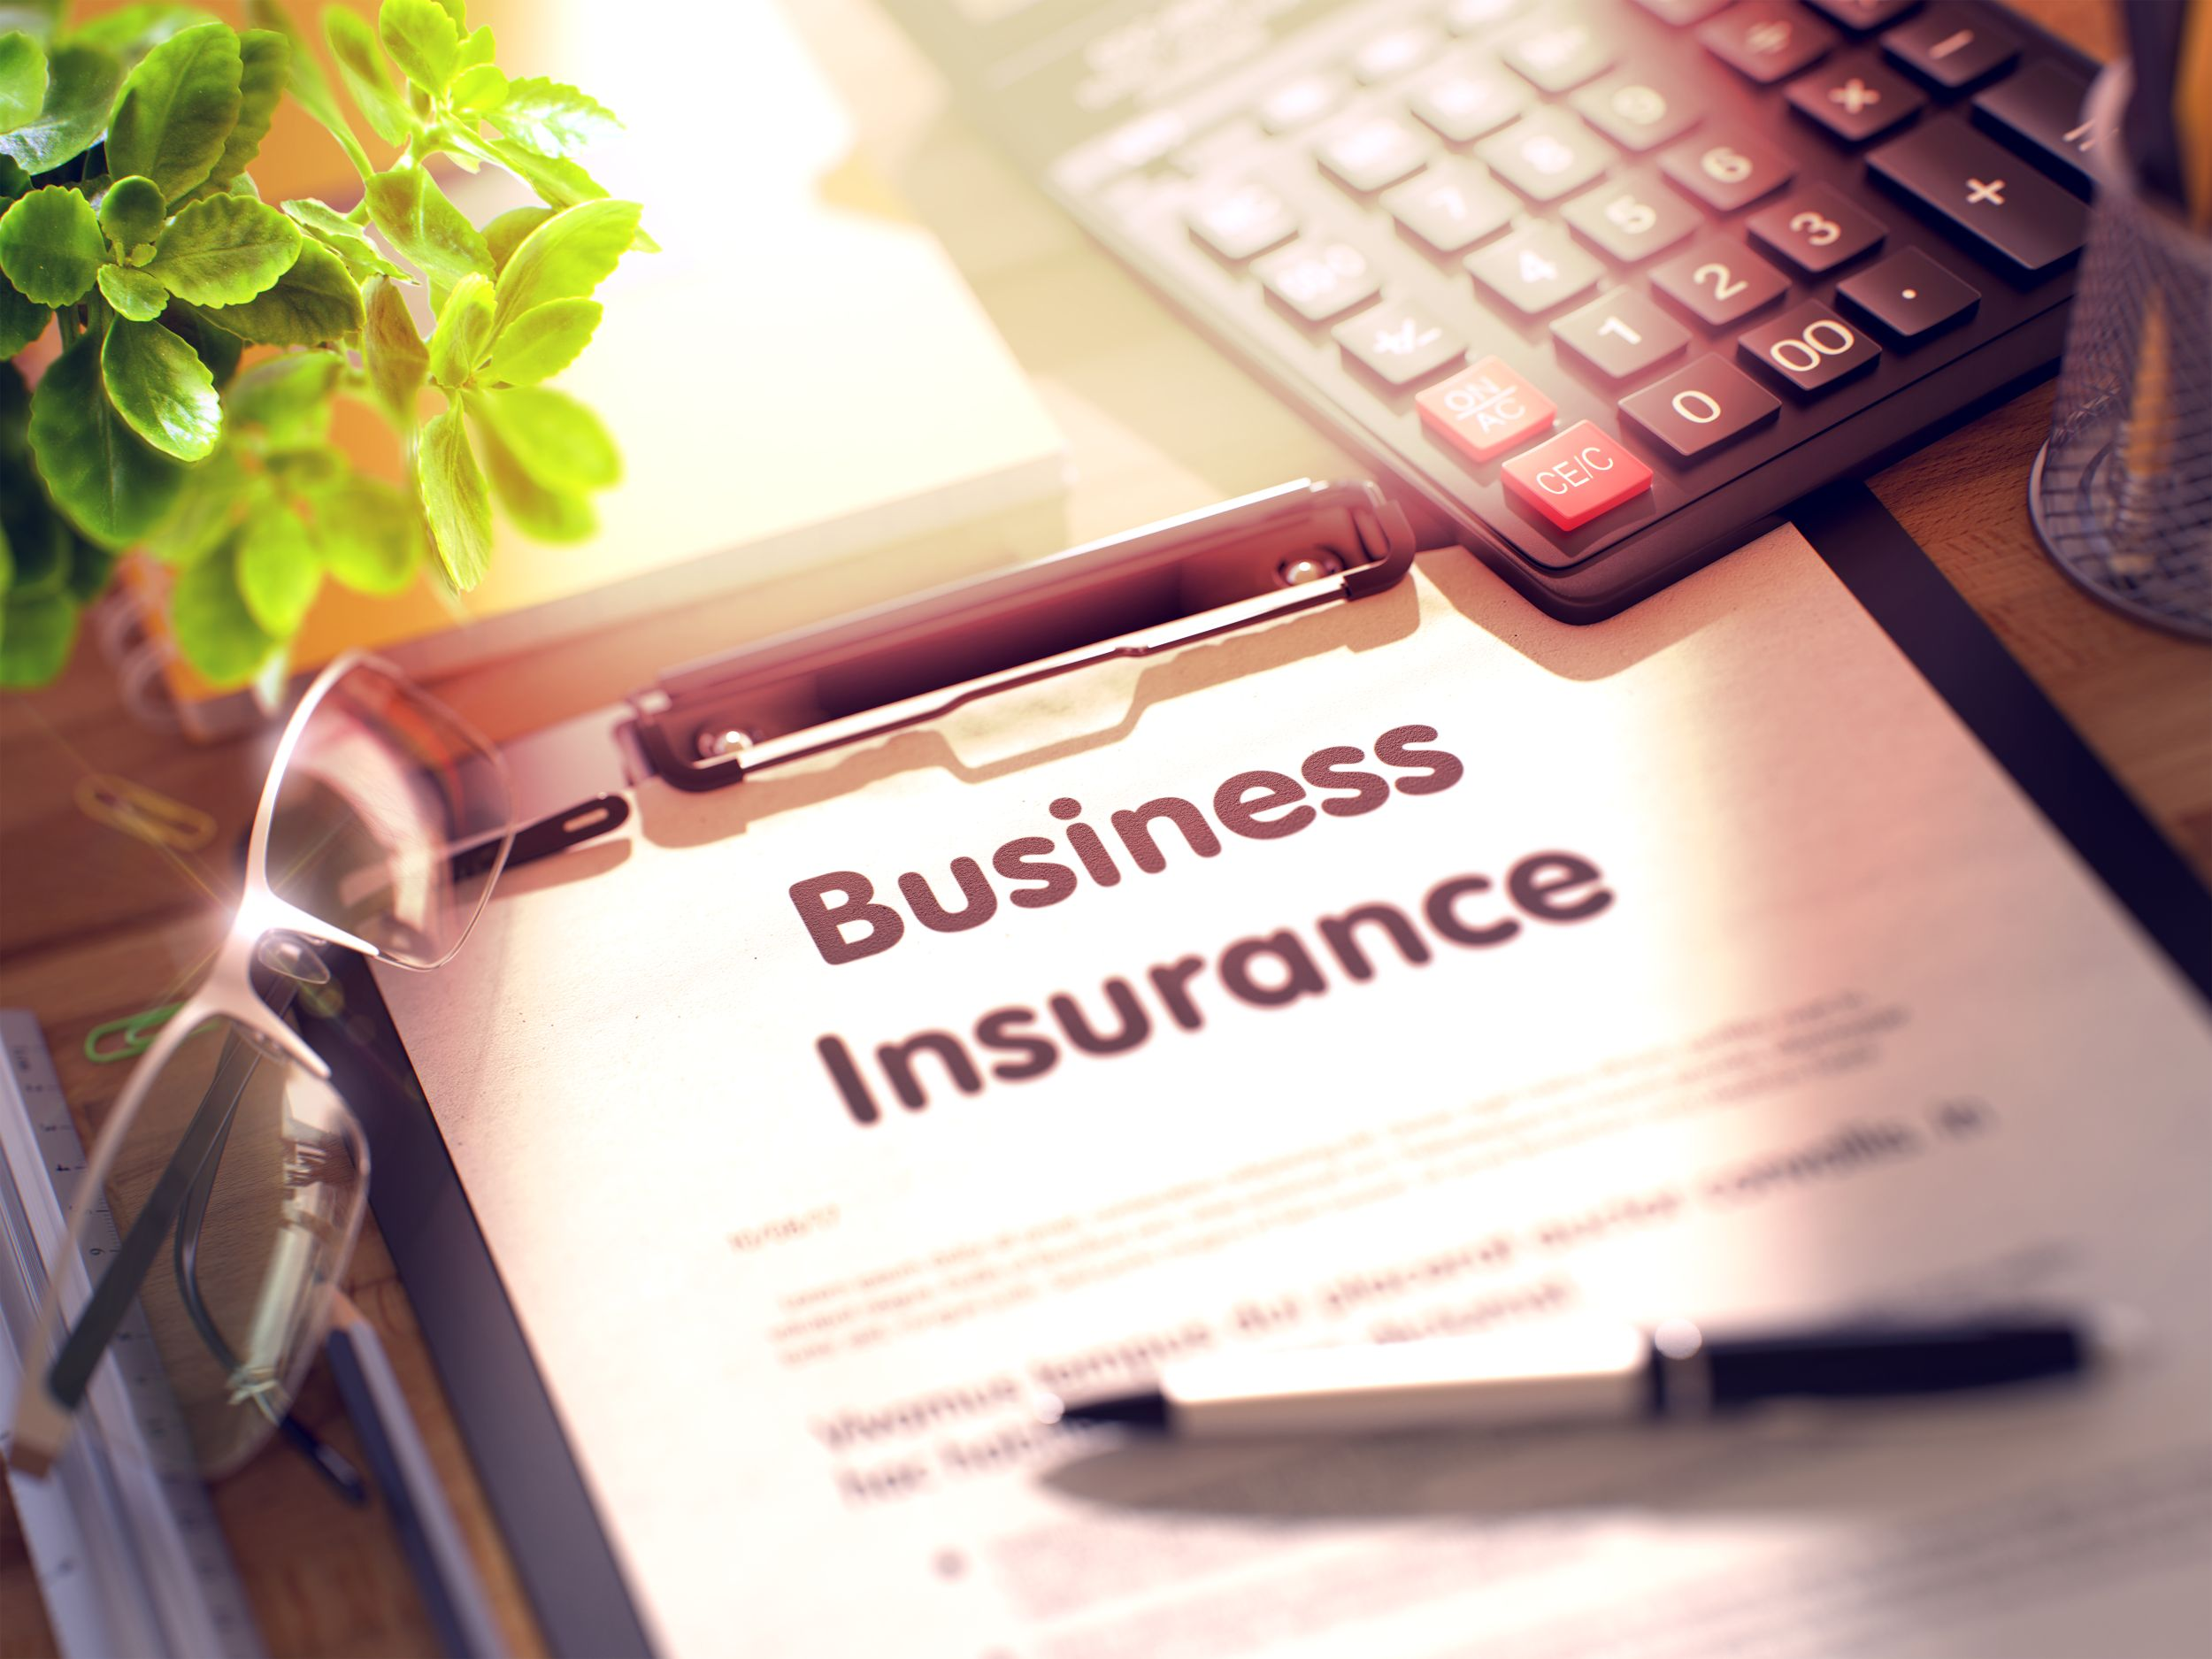 best-insurance-business-palm-beach-gardens-fl-usa